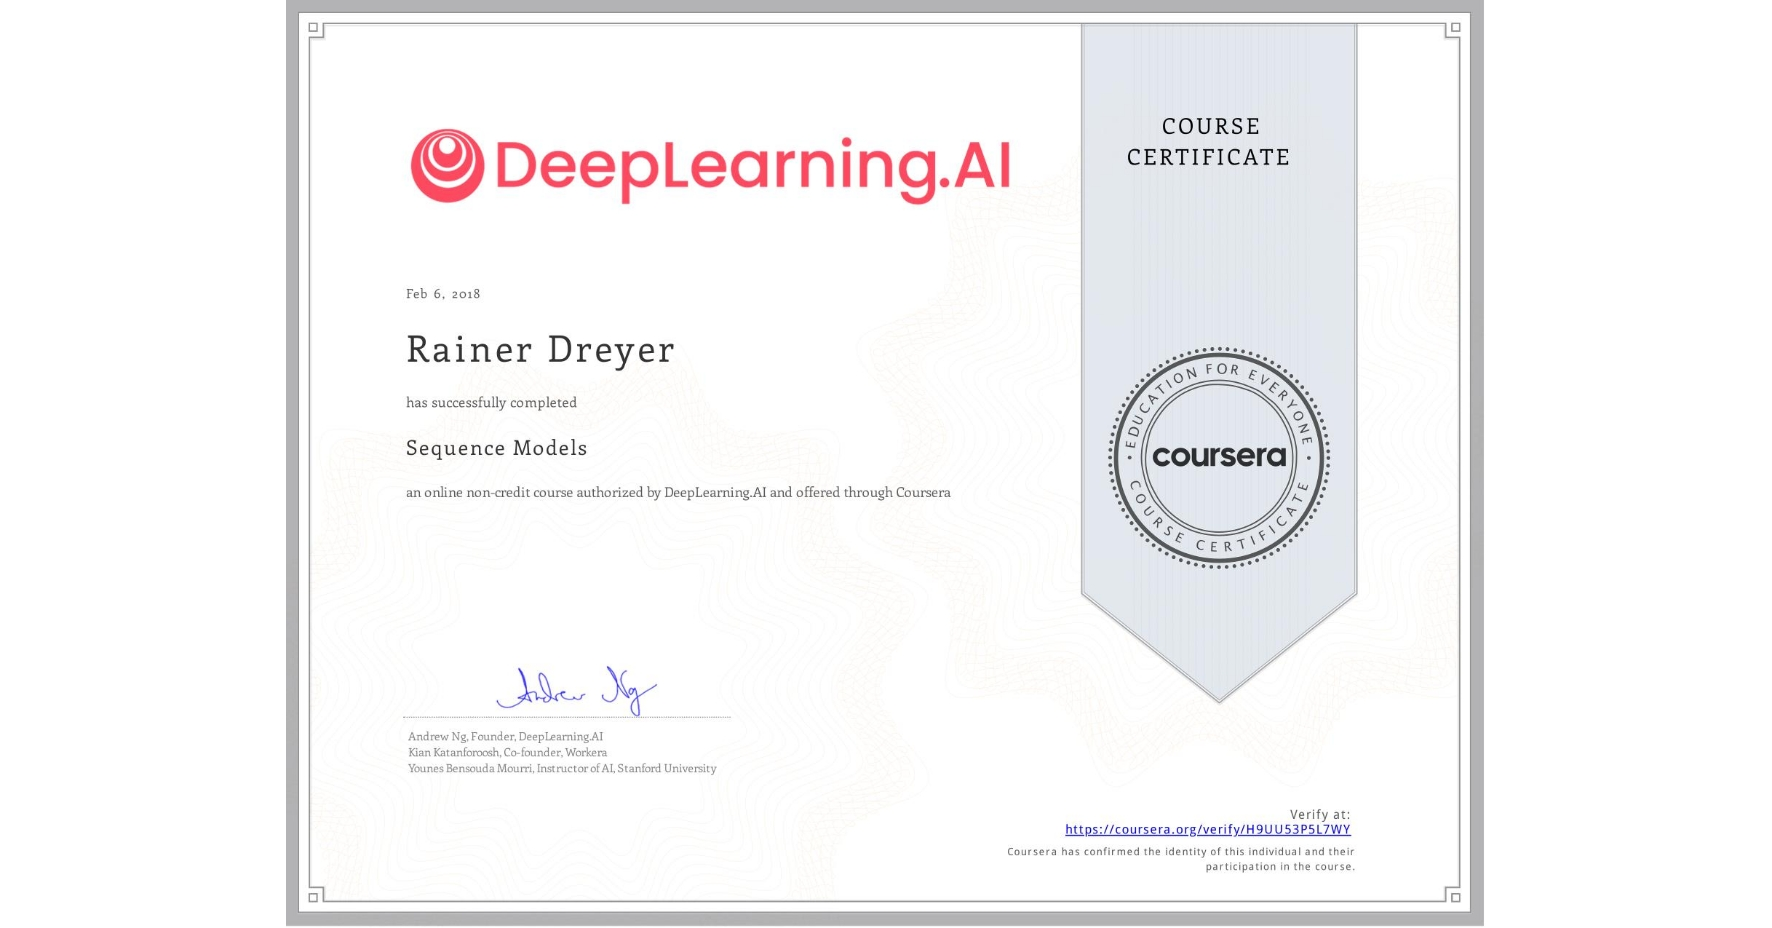 View certificate for Rainer Dreyer, Sequence Models, an online non-credit course authorized by DeepLearning.AI and offered through Coursera